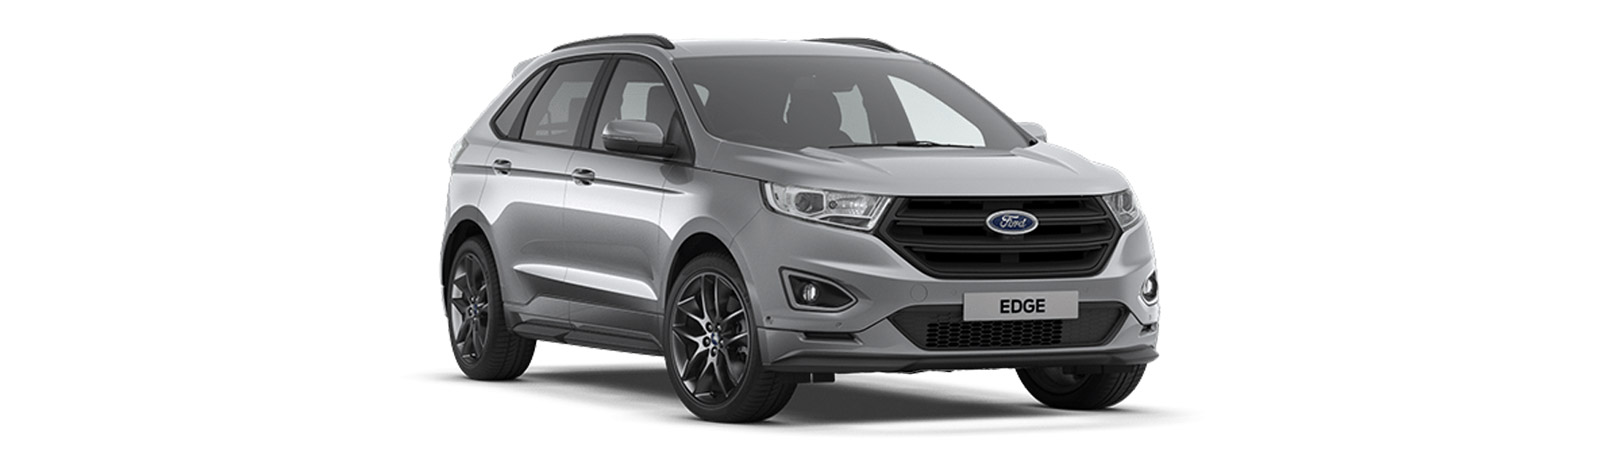 The Chrome Grille Of Zetec And Titanium Models Furthermore It Should Hide Road Grime For A Decent Length Of Time And Dark Colours Such As This Should